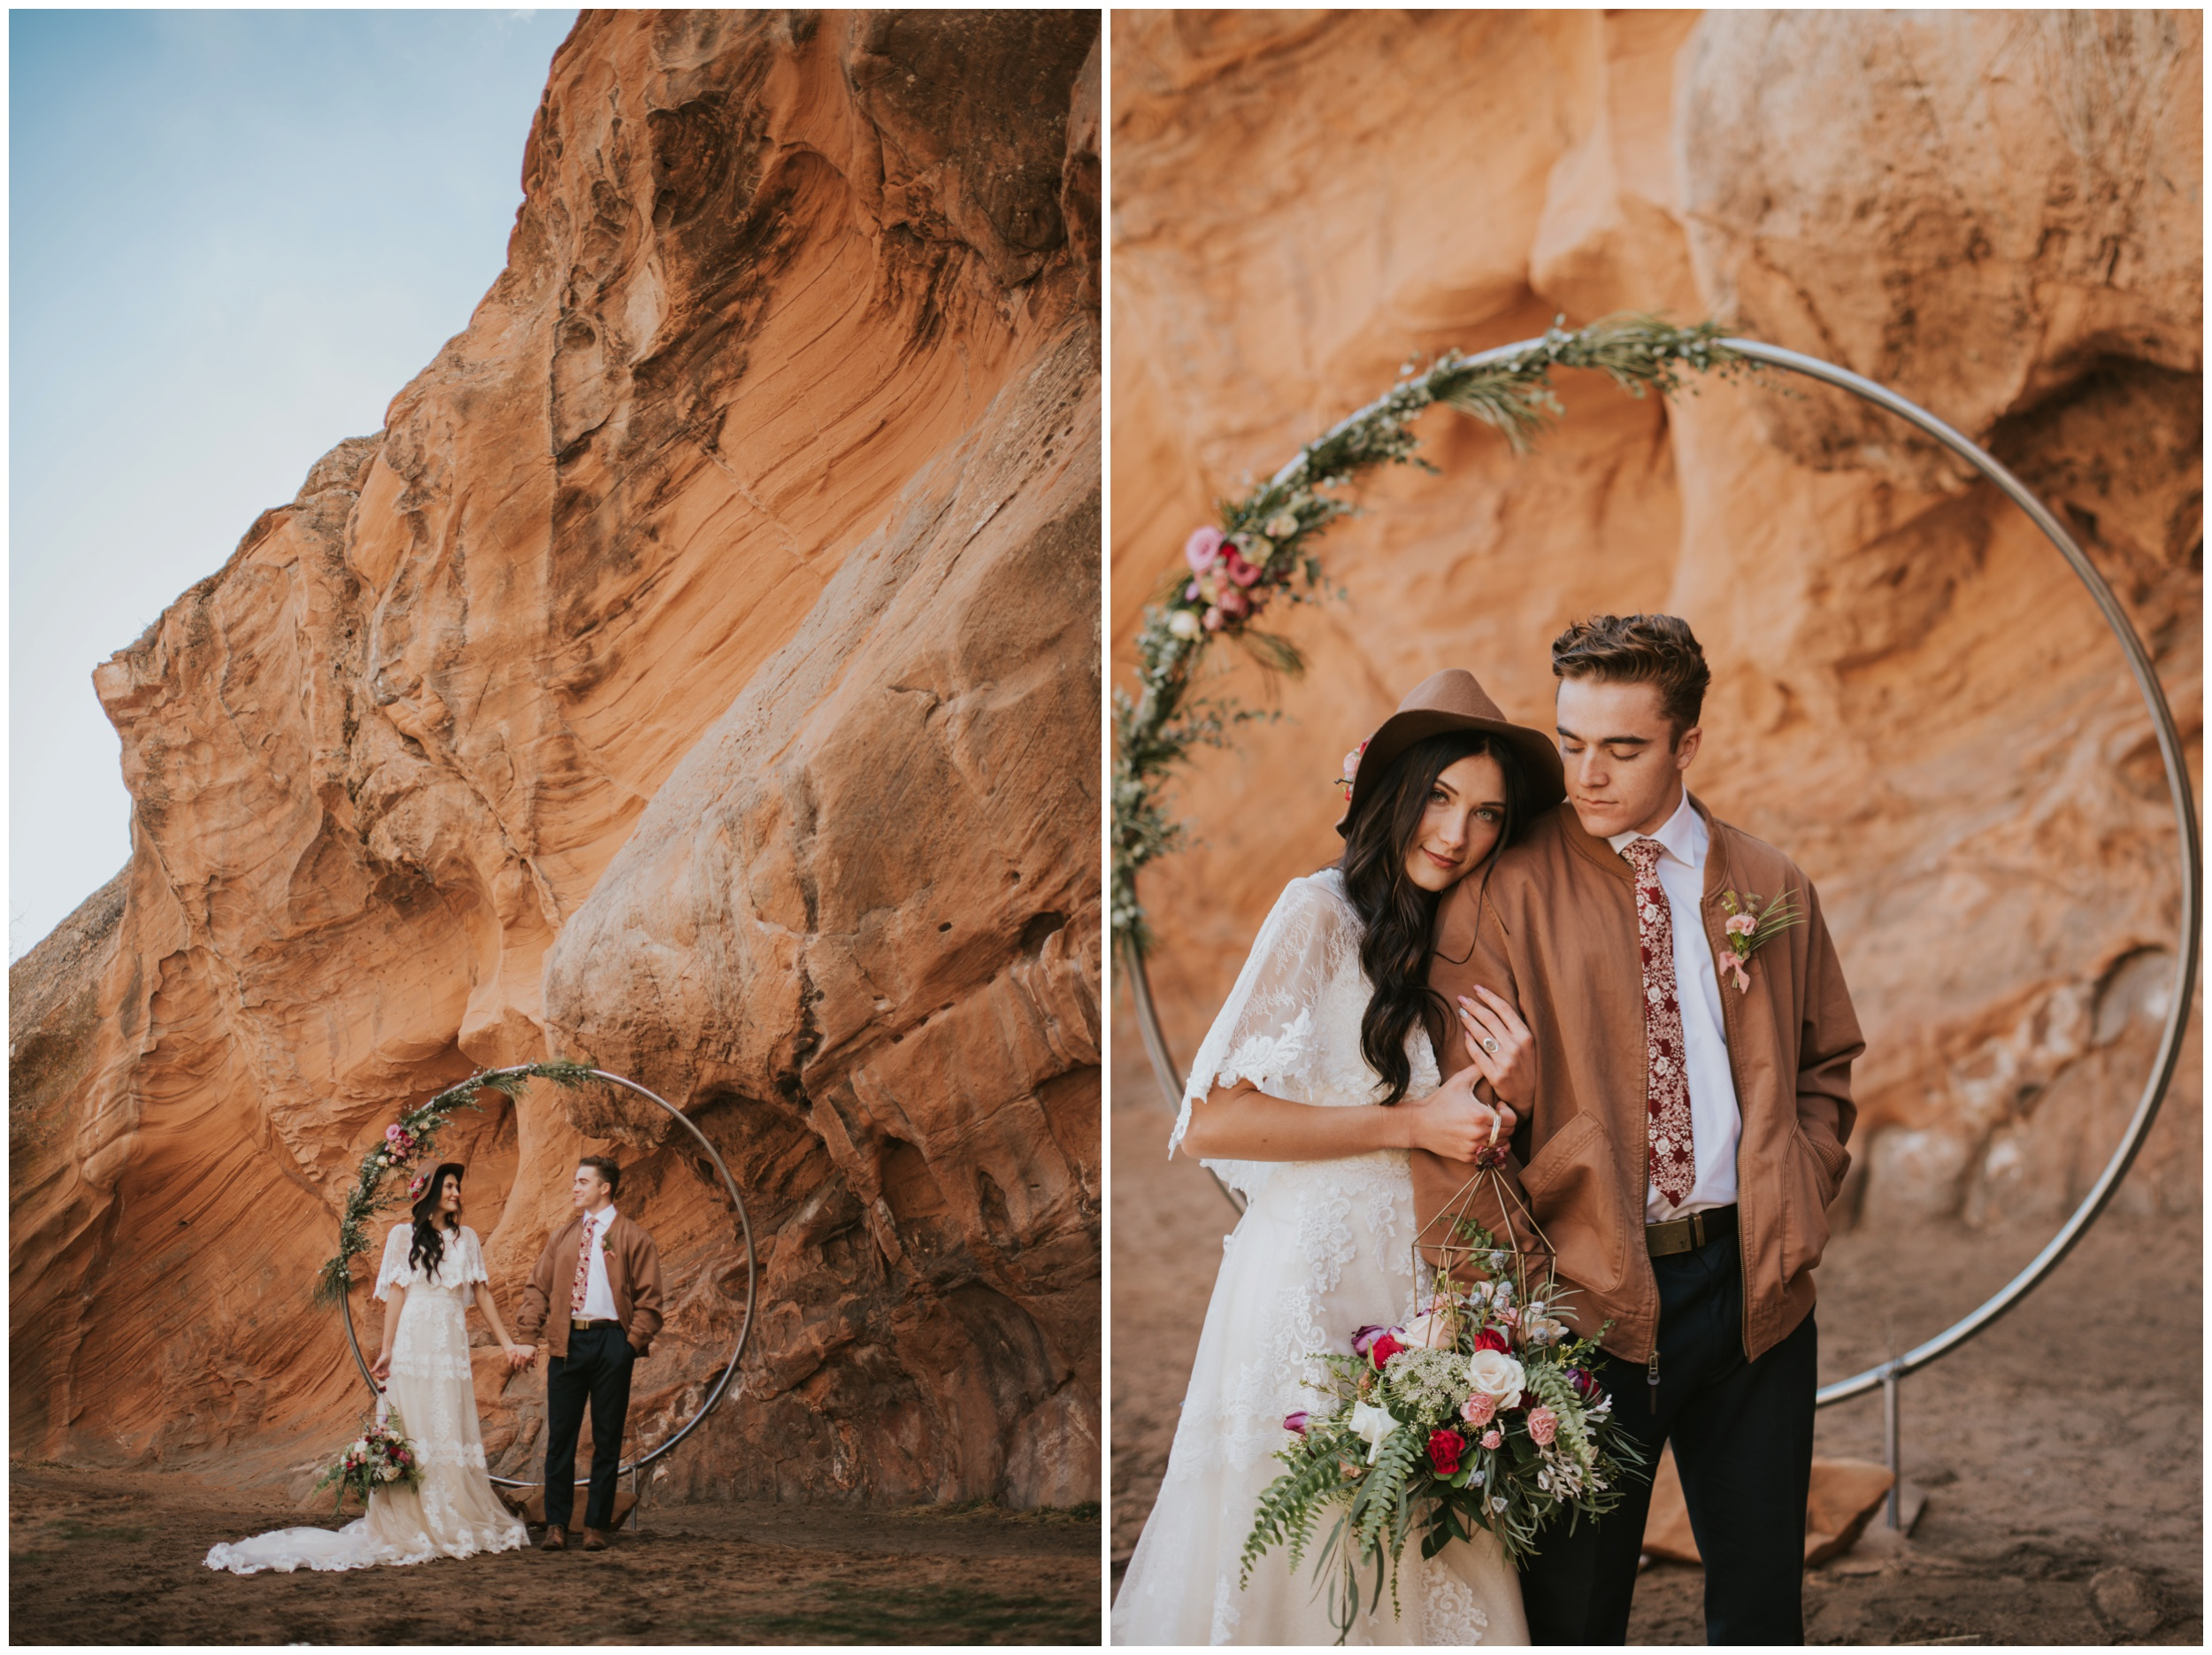 redrockutah-idahophotographer-utahphotographer-wedding-16.jpg